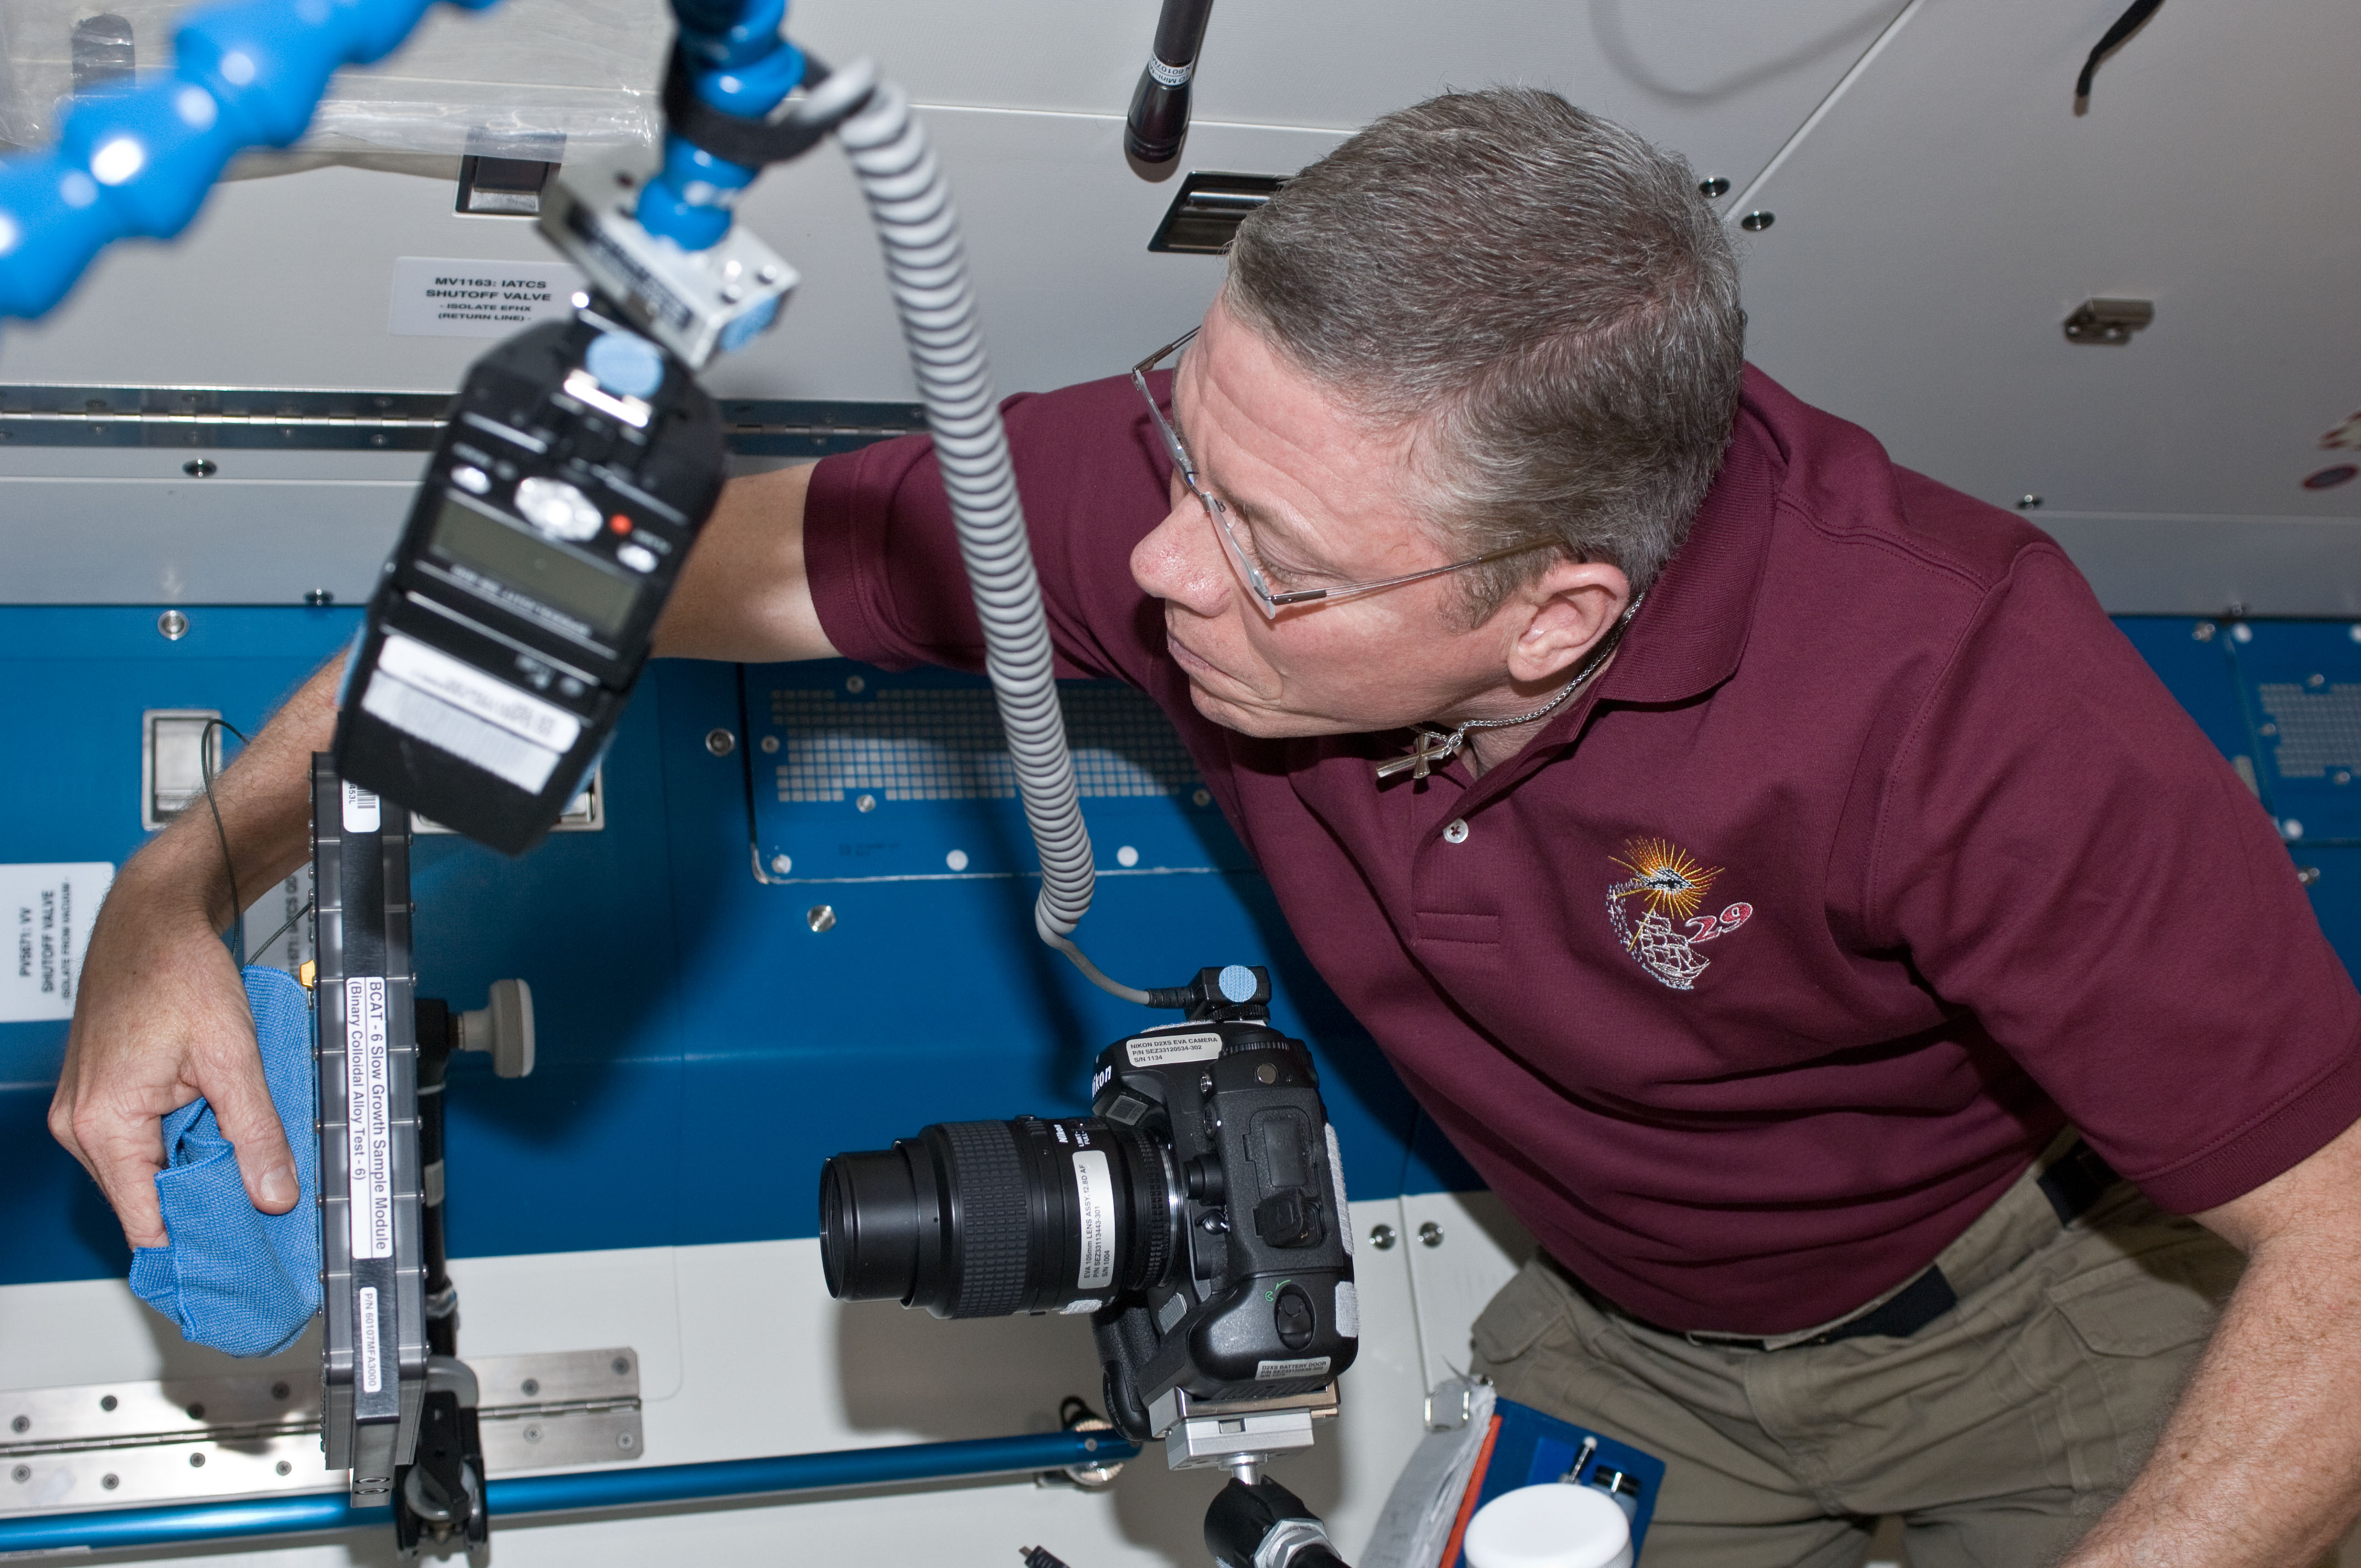 Expedition 29 Commander Performs an Experiment